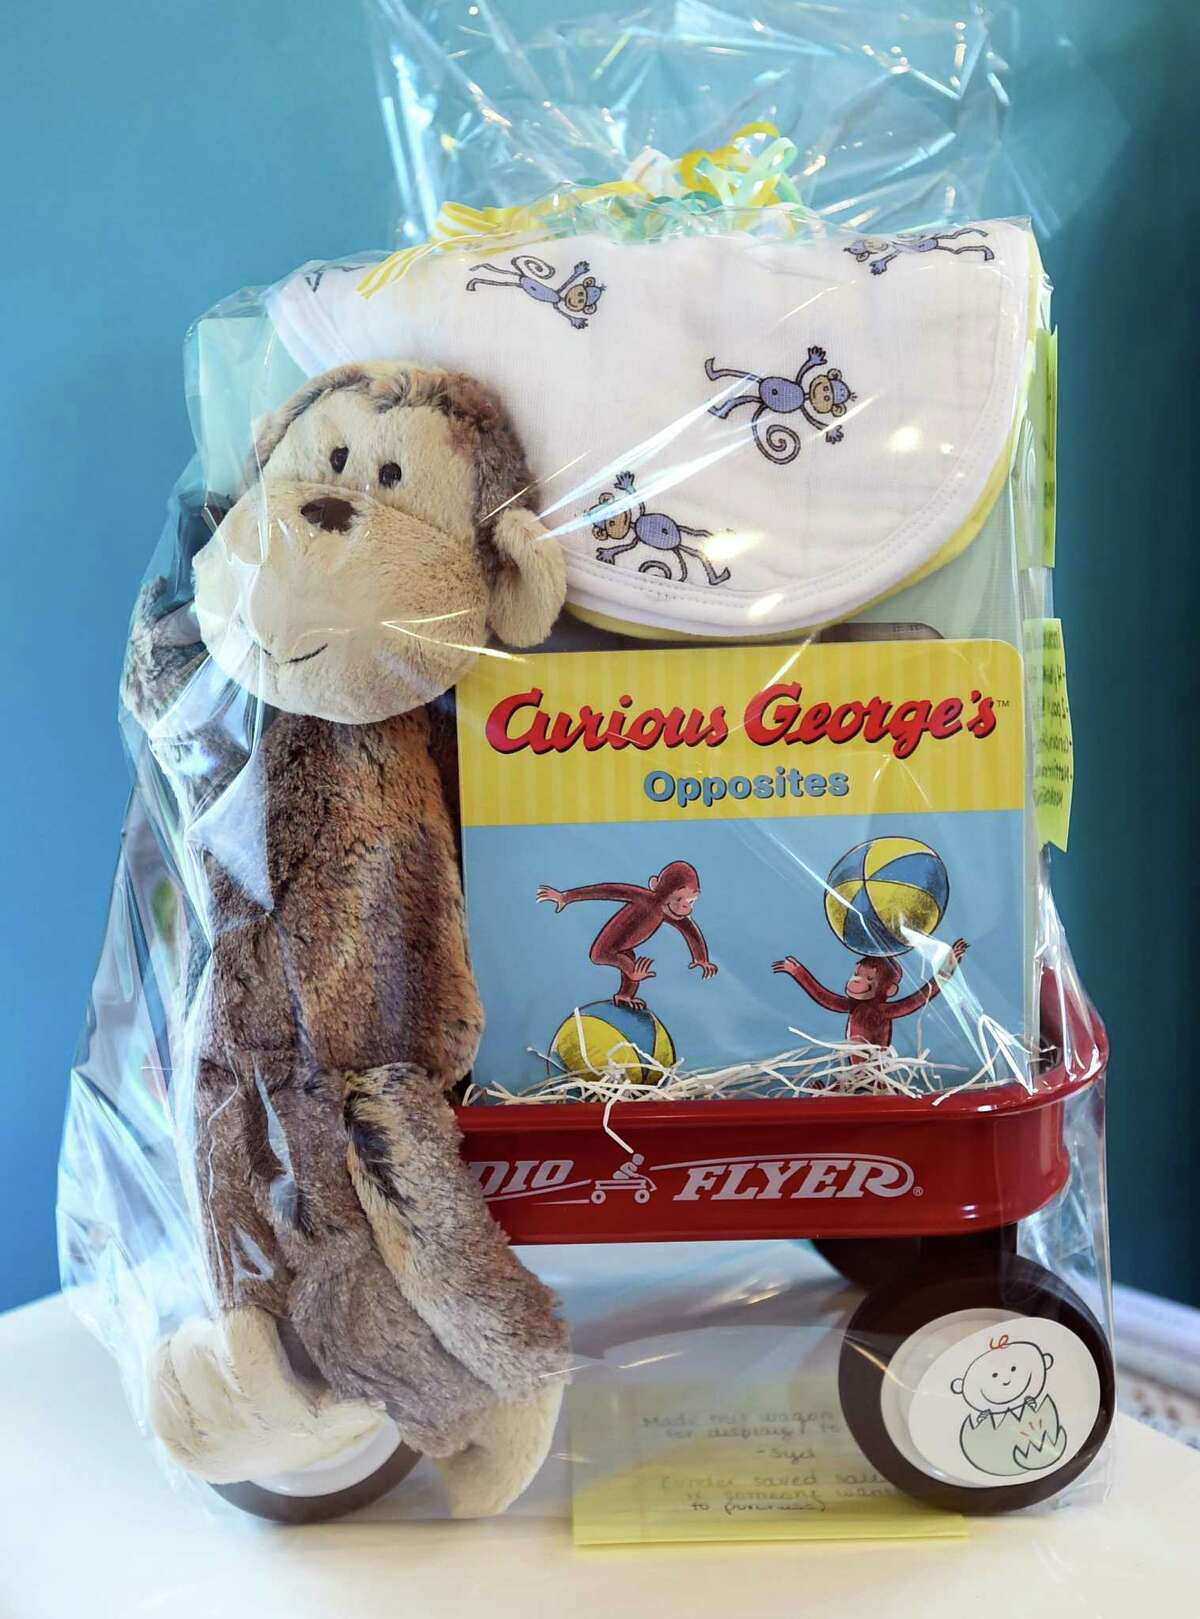 Guilford, Connecticut - Friday, July 31, 2020: A baby gift bundle of a 4-pack of swaddle, a 2-pack of bury tips, a Curious George and Mattie the Monkey stuffed animal at Just Hatched baby clothing and accessory store in Guilford.